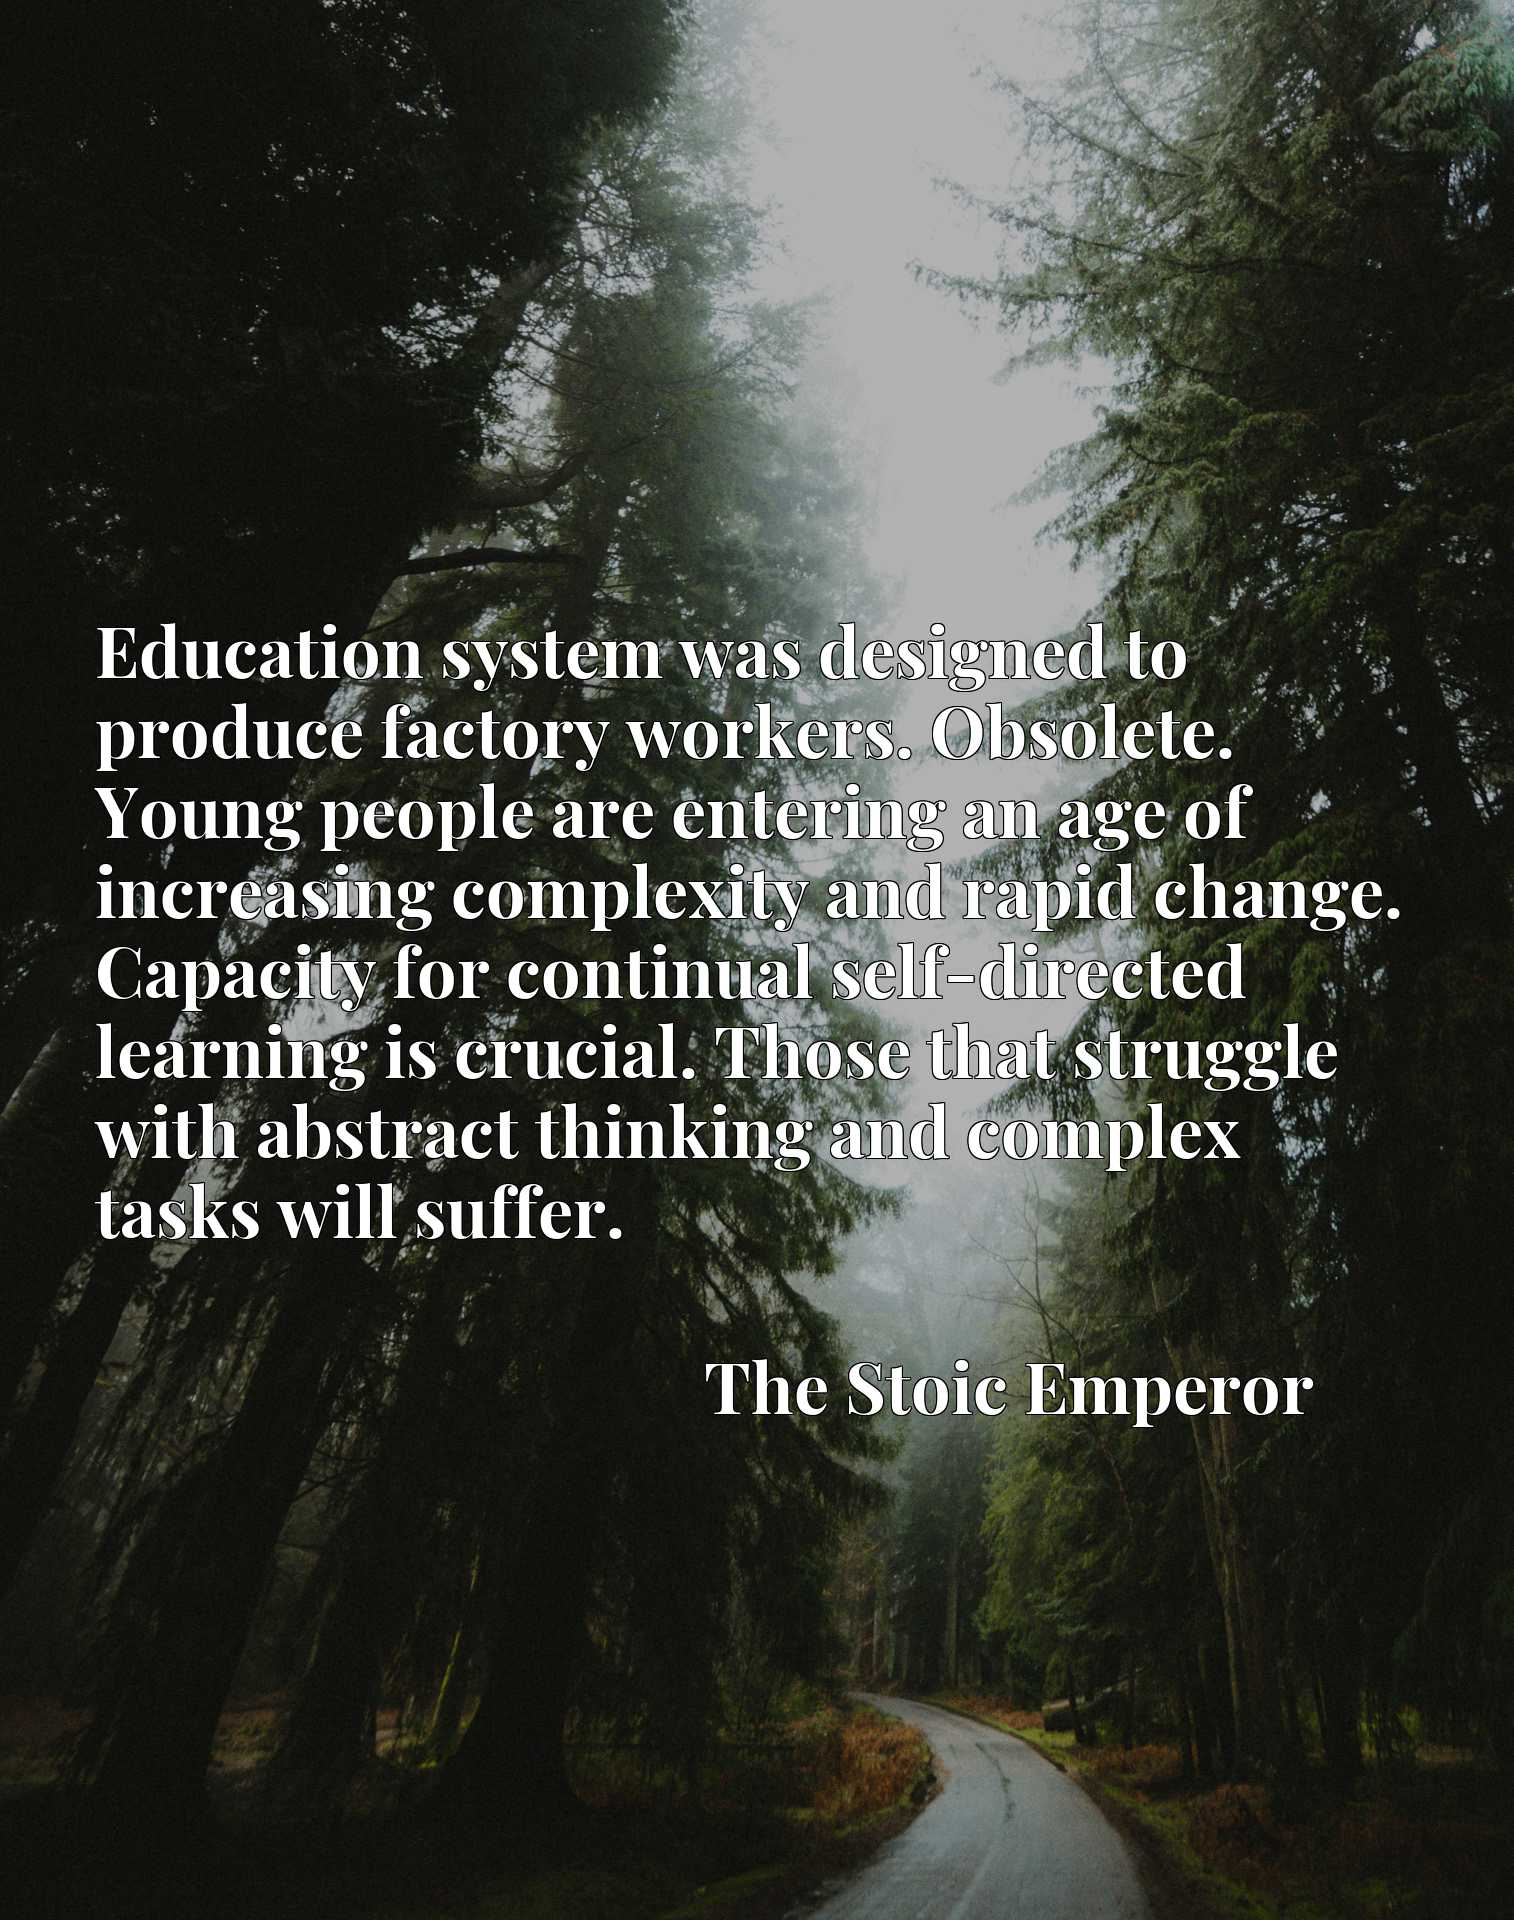 Education system was designed to produce factory workers. Obsolete. Young people are entering an age of increasing complexity and rapid change. Capacity for continual self-directed learning is crucial. Those that struggle with abstract thinking and complex tasks will suffer.